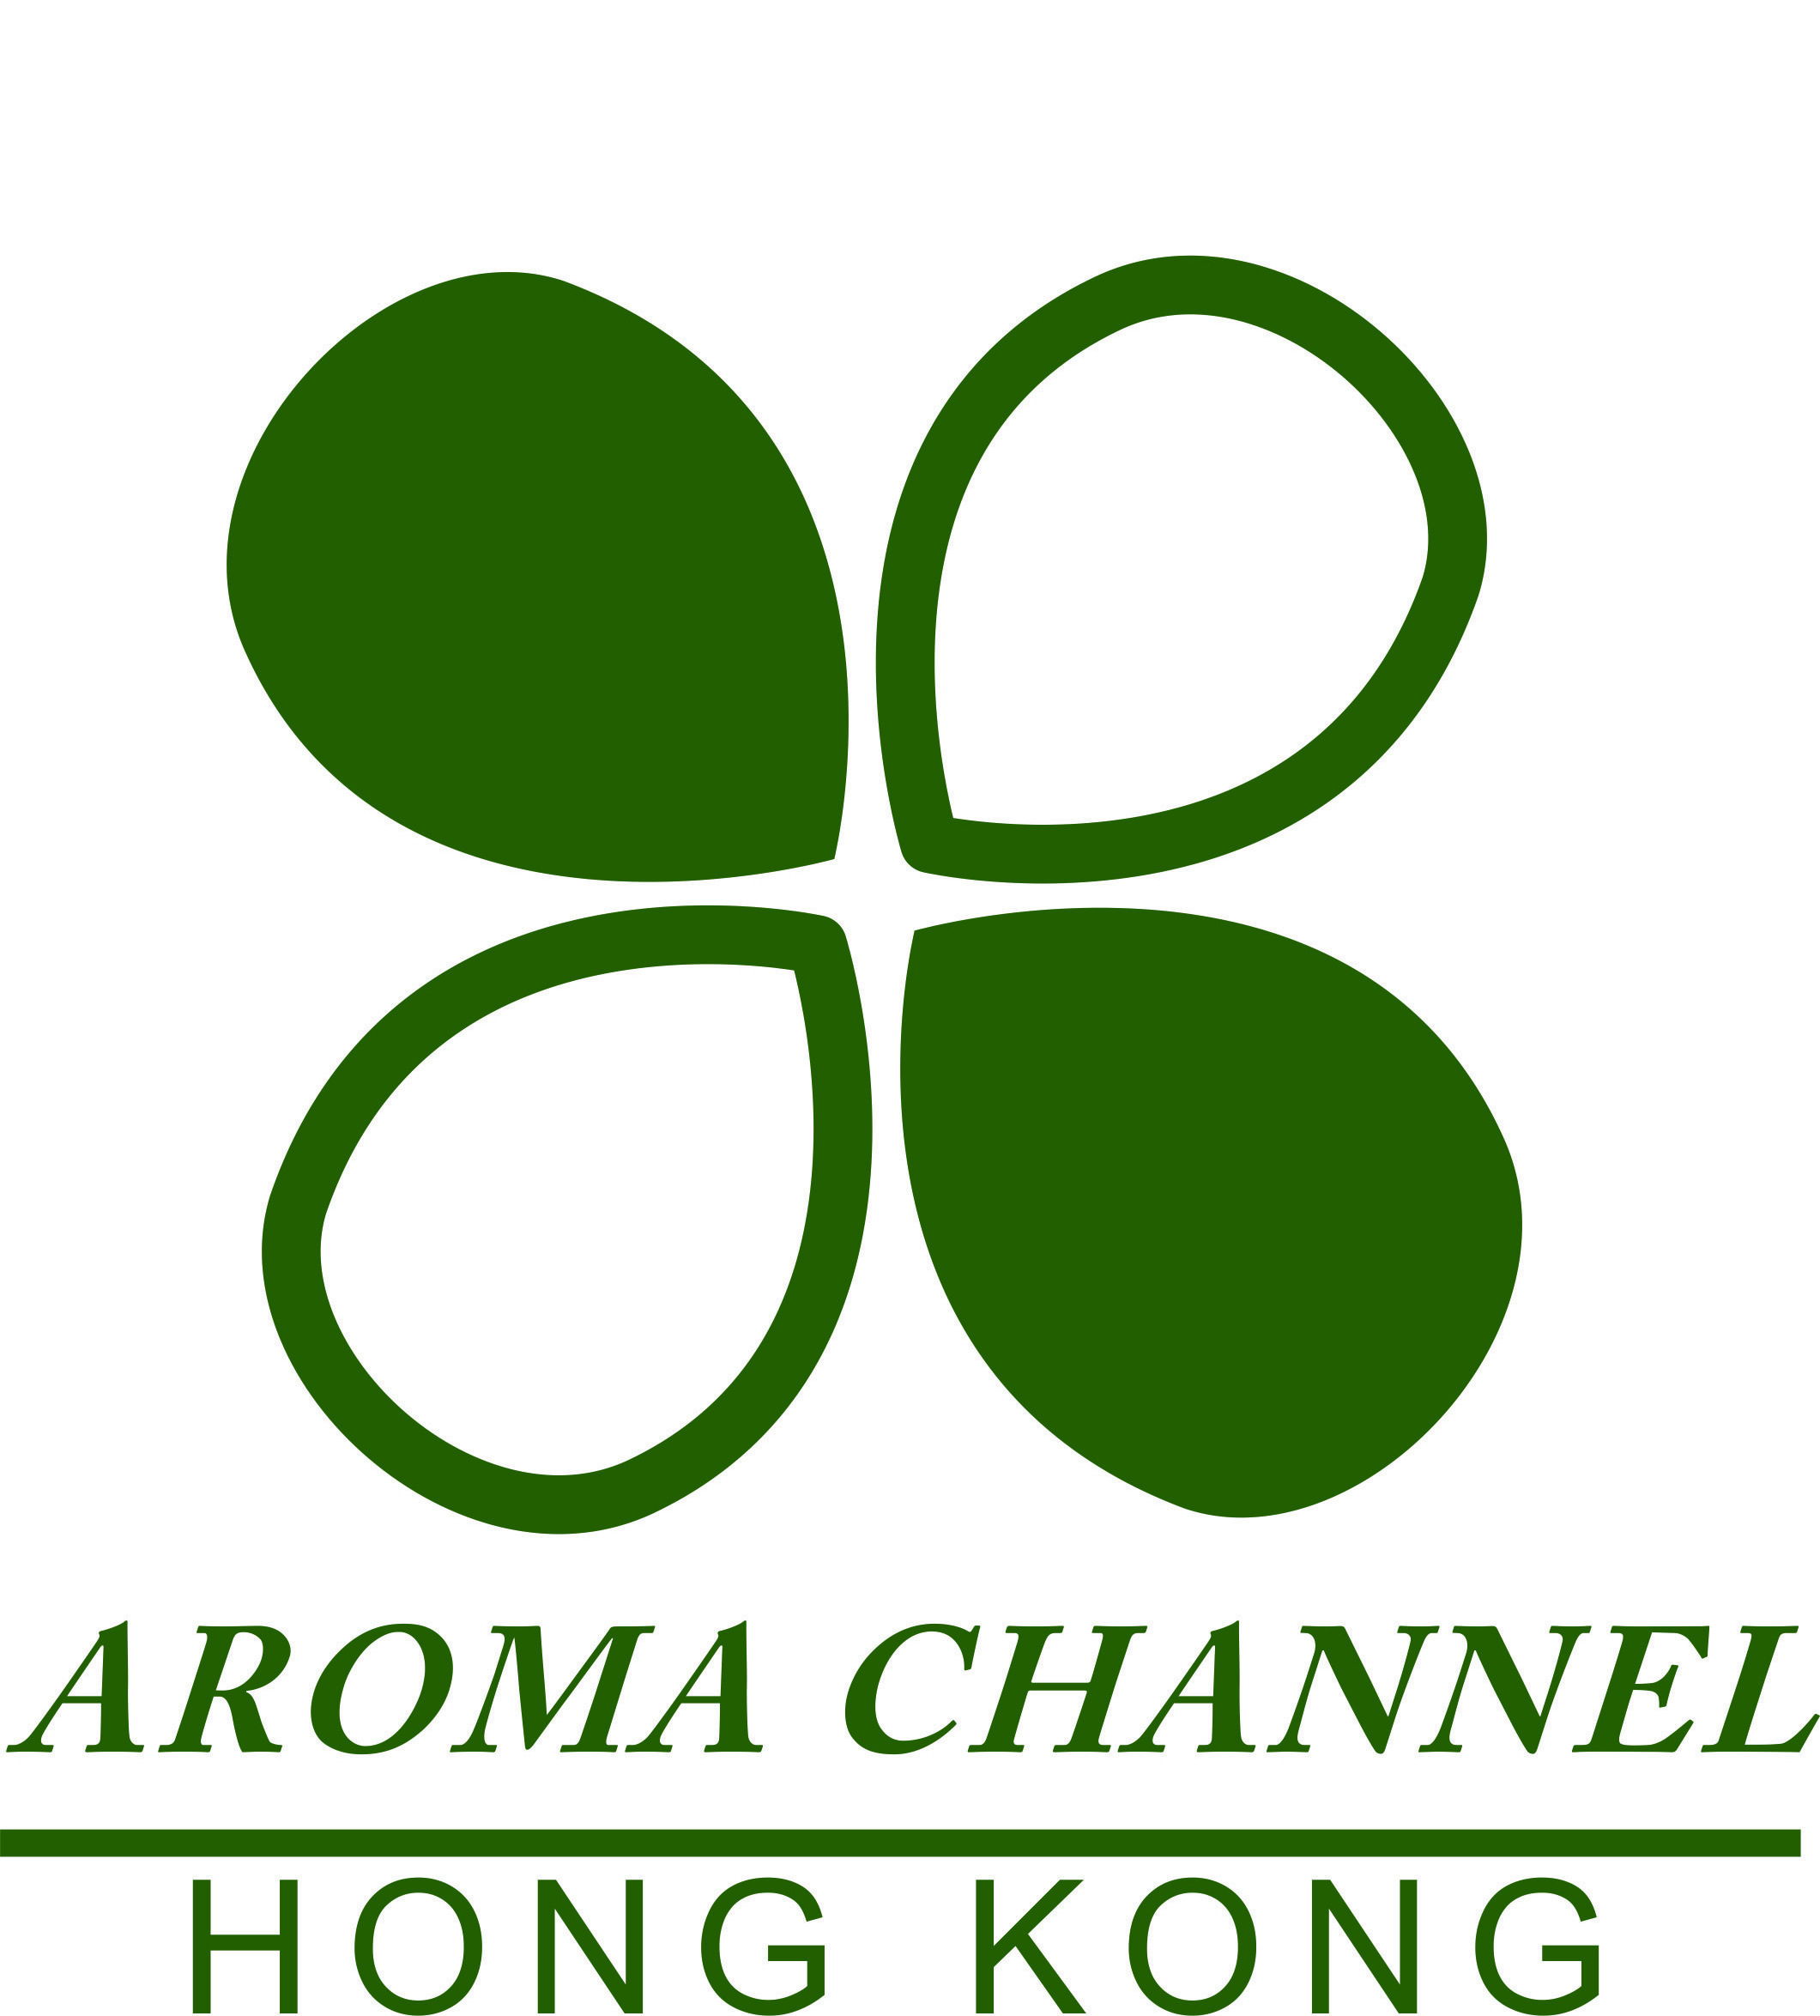 AROMA CHANNEL